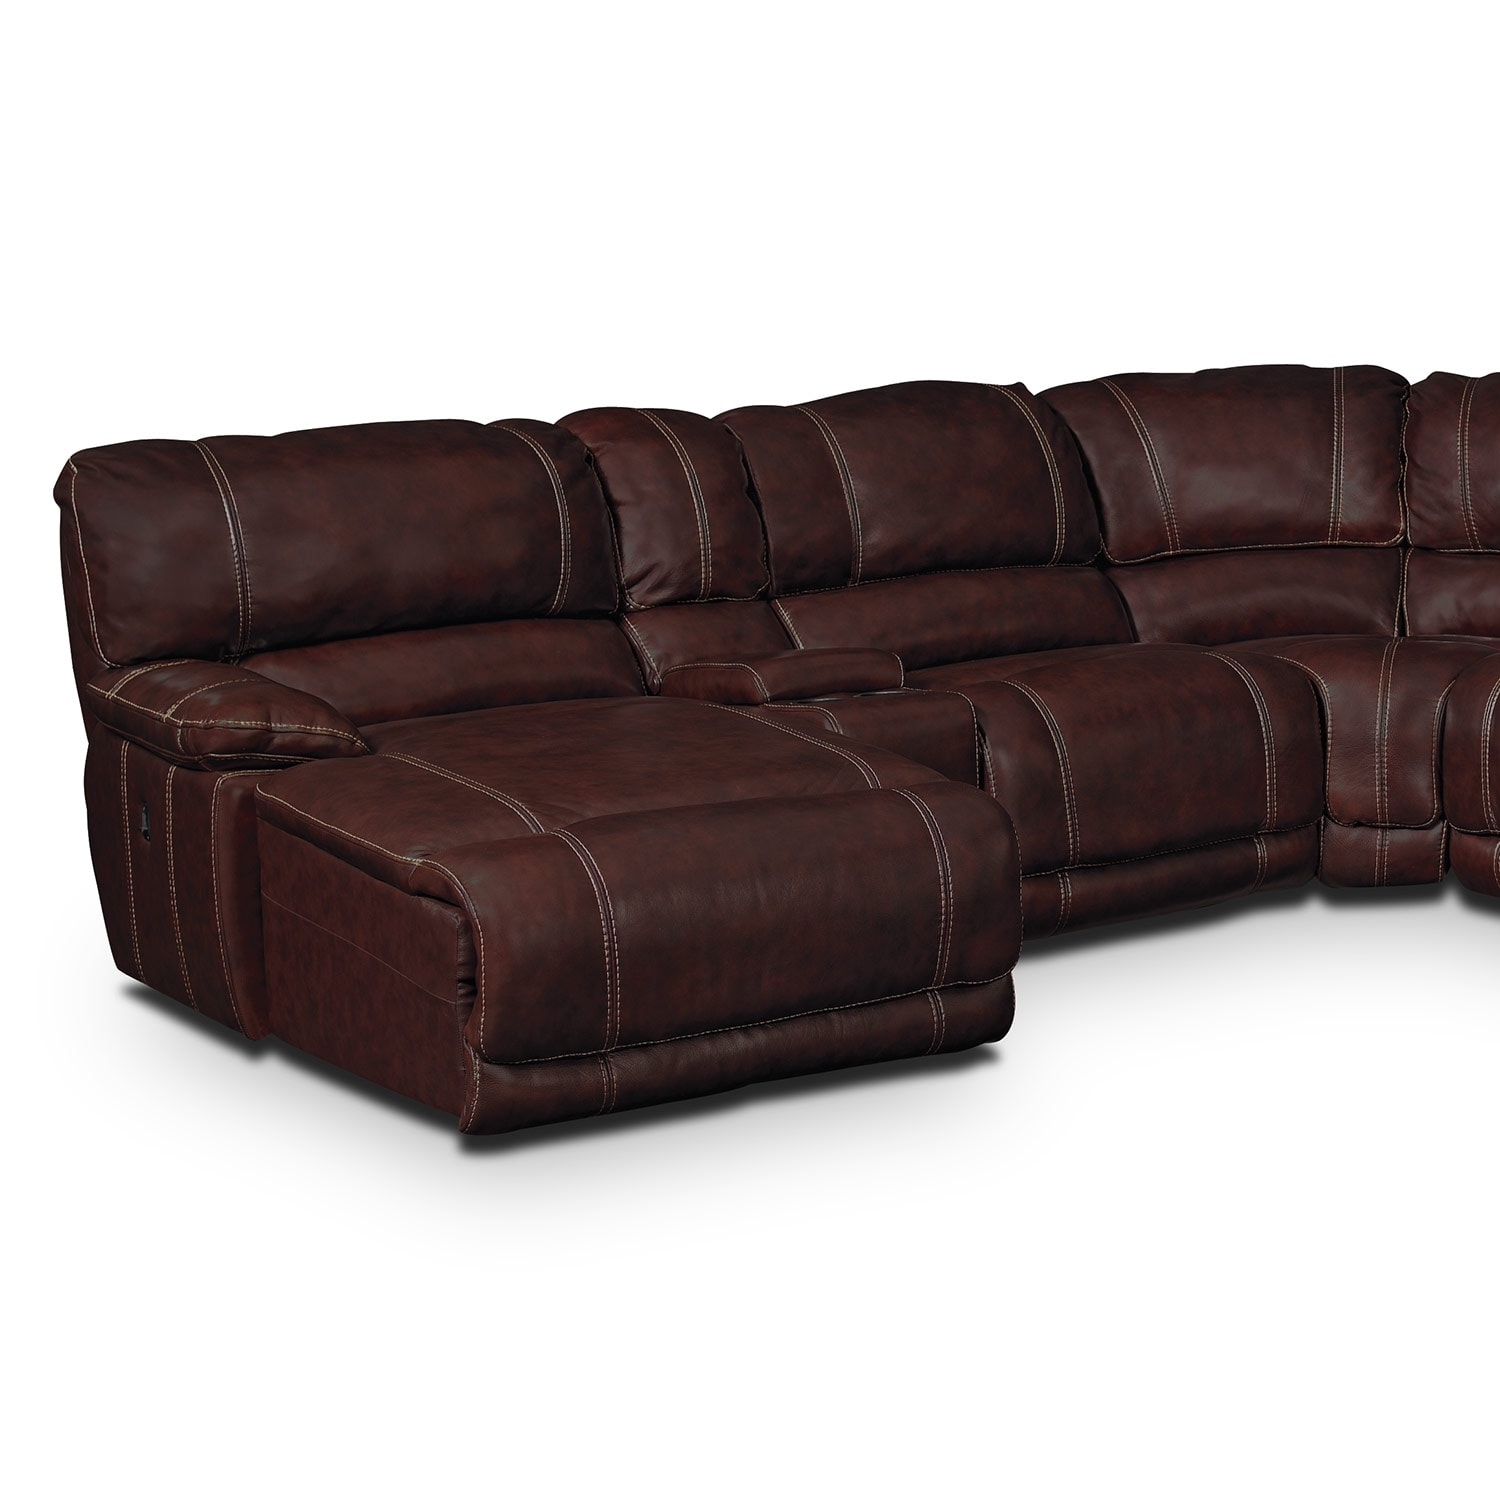 St Malo III Leather 6 Pc Power Reclining Sectional  : 272252 from valuecityfurniture.com size 1500 x 1500 jpeg 342kB